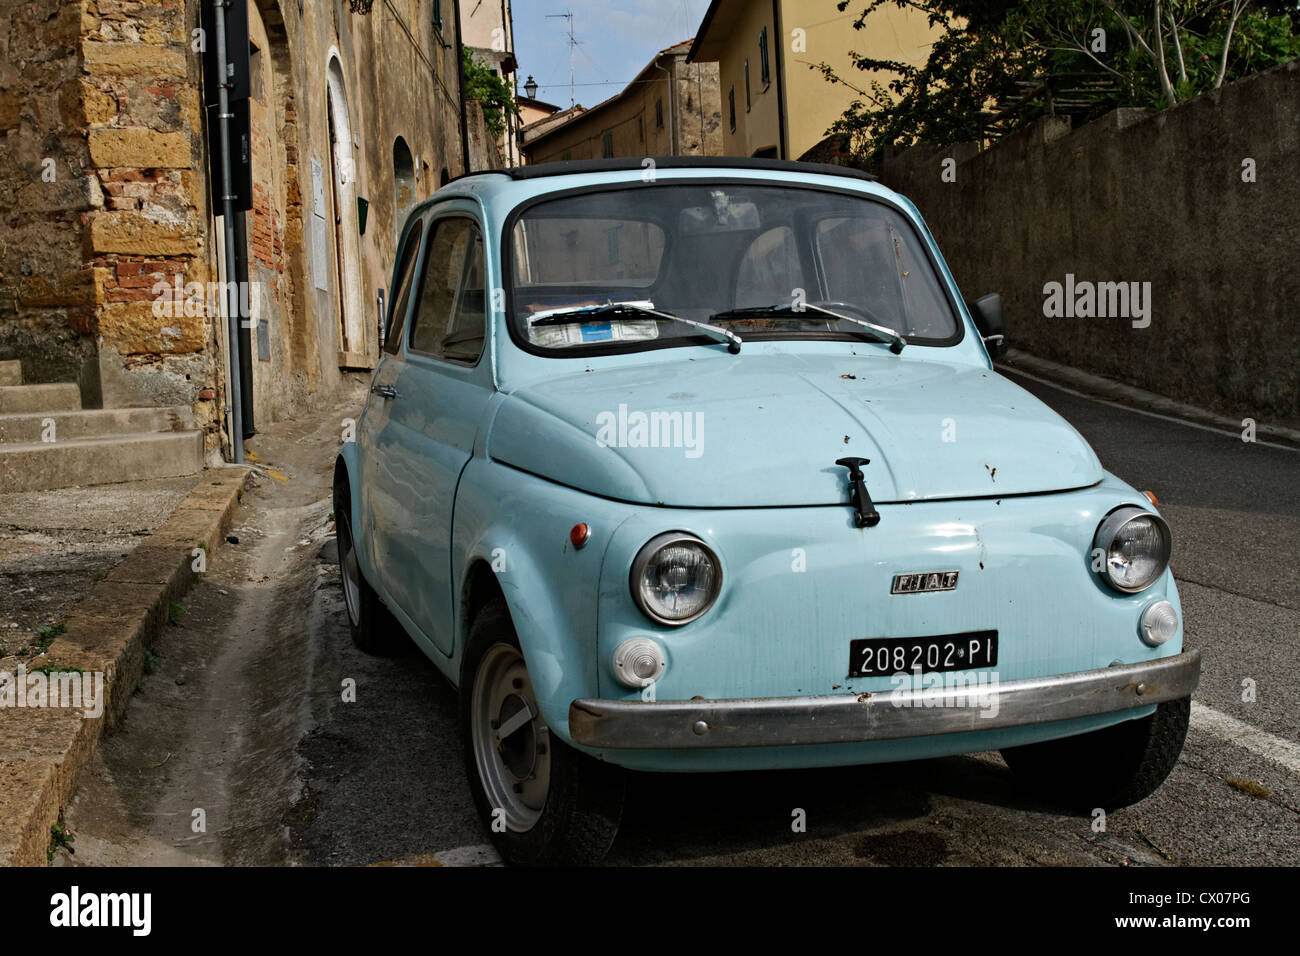 Old light blue Fiat 500 parked in street, Guardistallo Tuscany Italy